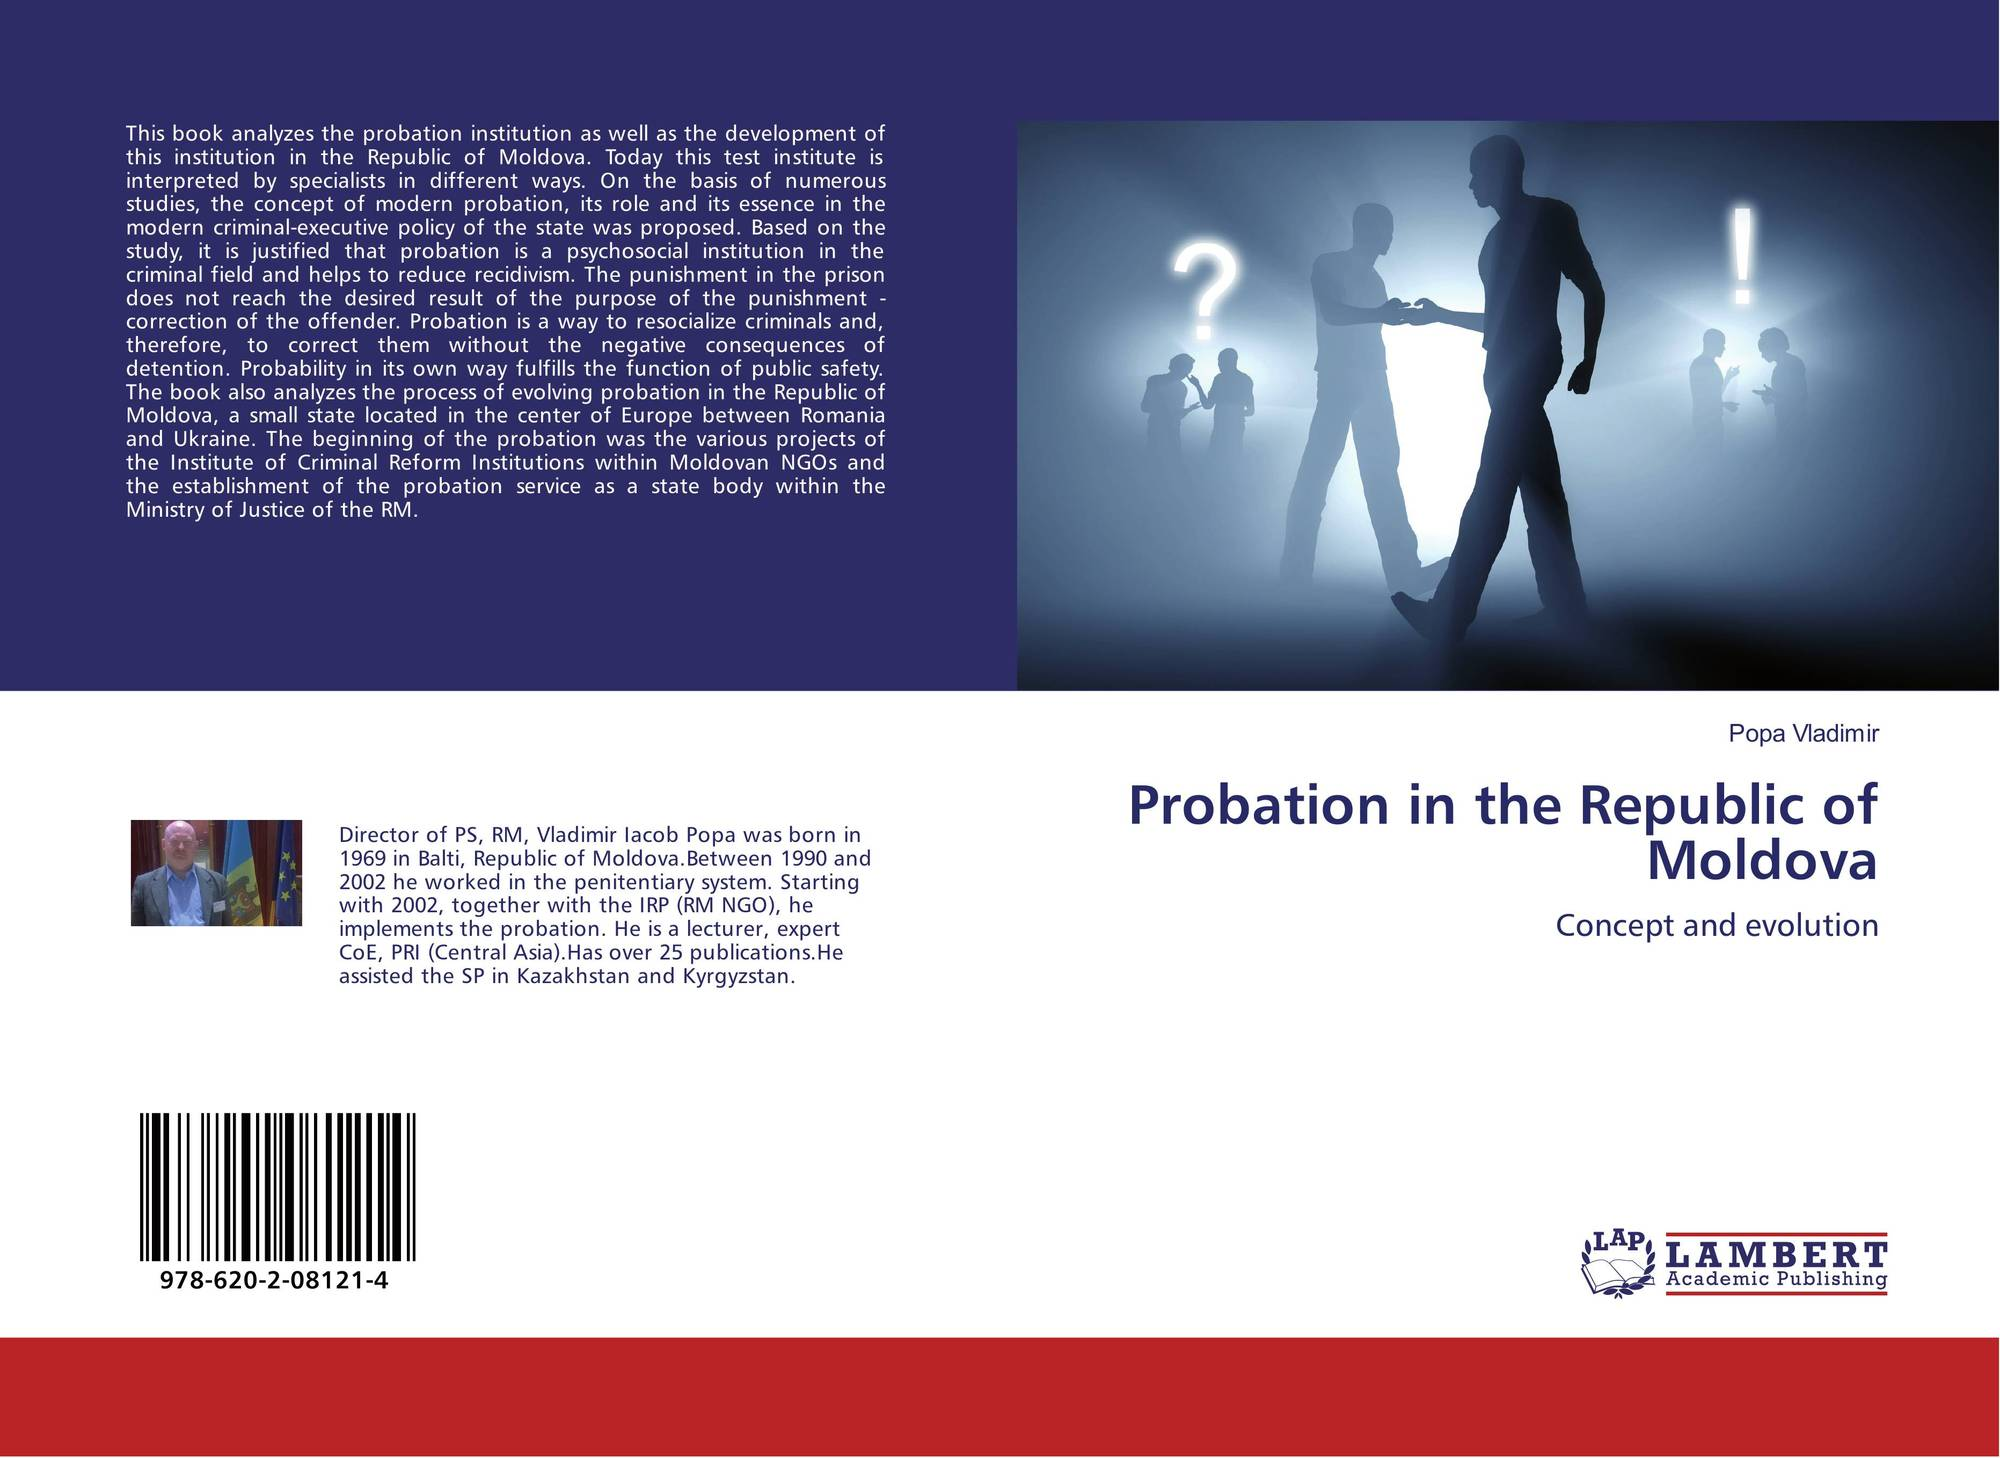 an introduction to the probation of first offenders act No person can be sentenced under the first time offenders act on more than one occasion if the terms of the first offender sentence are successfully completed, and the probationer discharged, those charges would be sealed on the gcic database when the discharge is applied to the gcic.